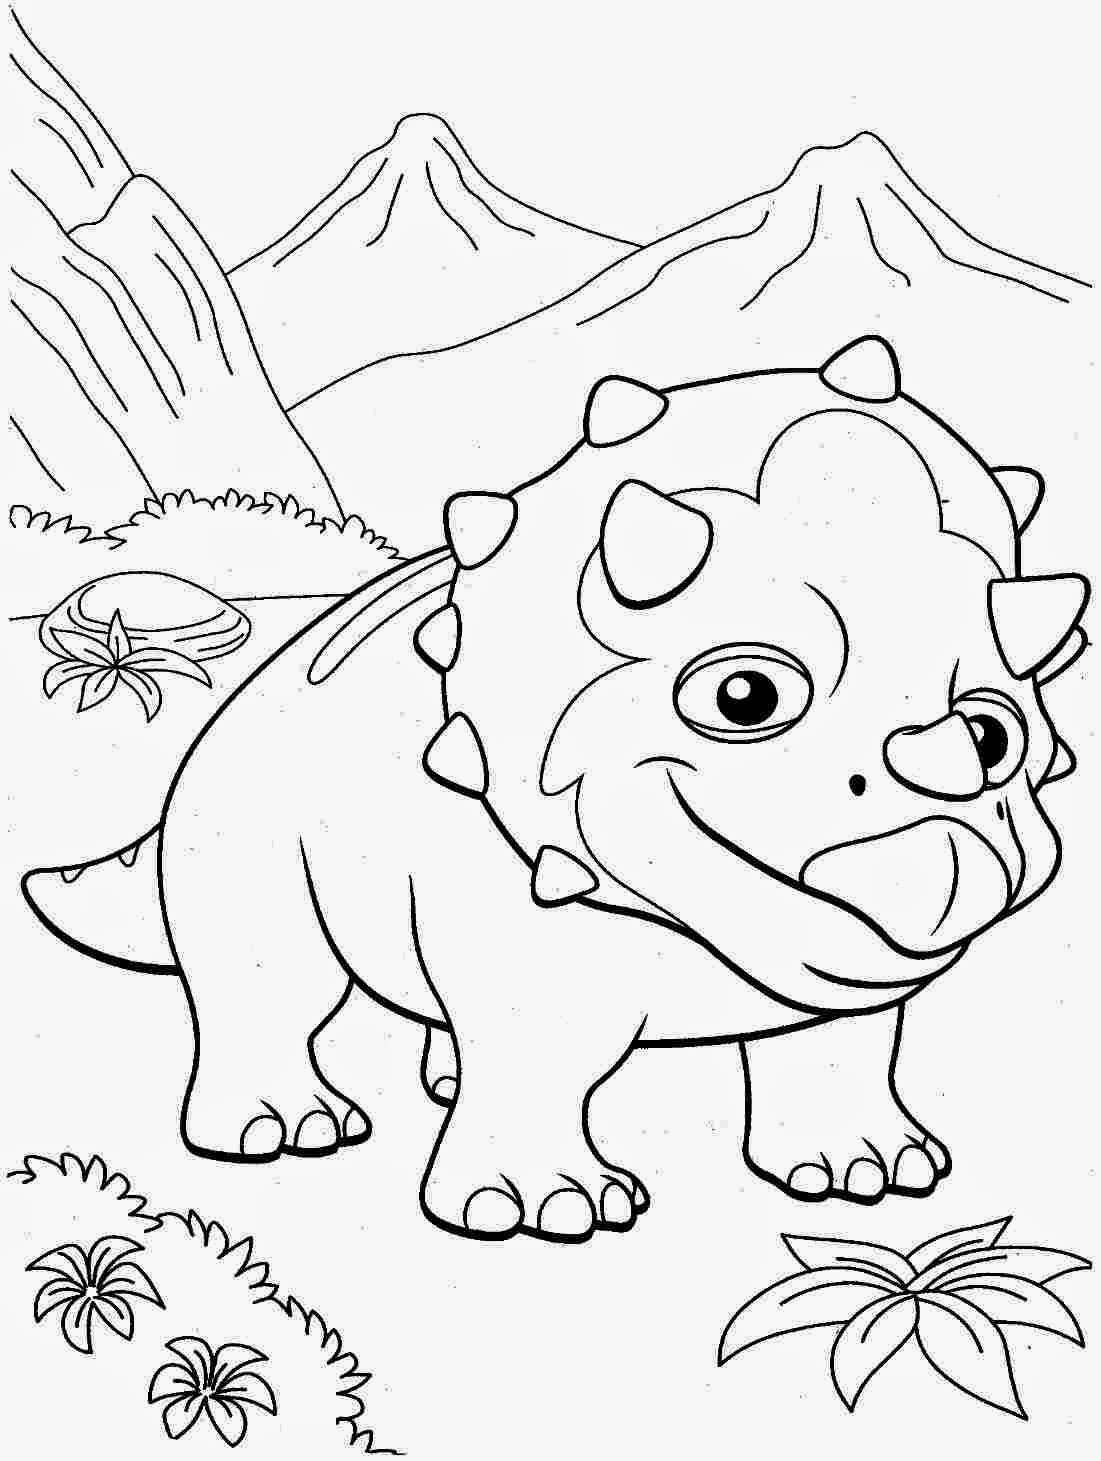 dino coloring page coloring pages dinosaur free printable coloring pages coloring dino page 1 1